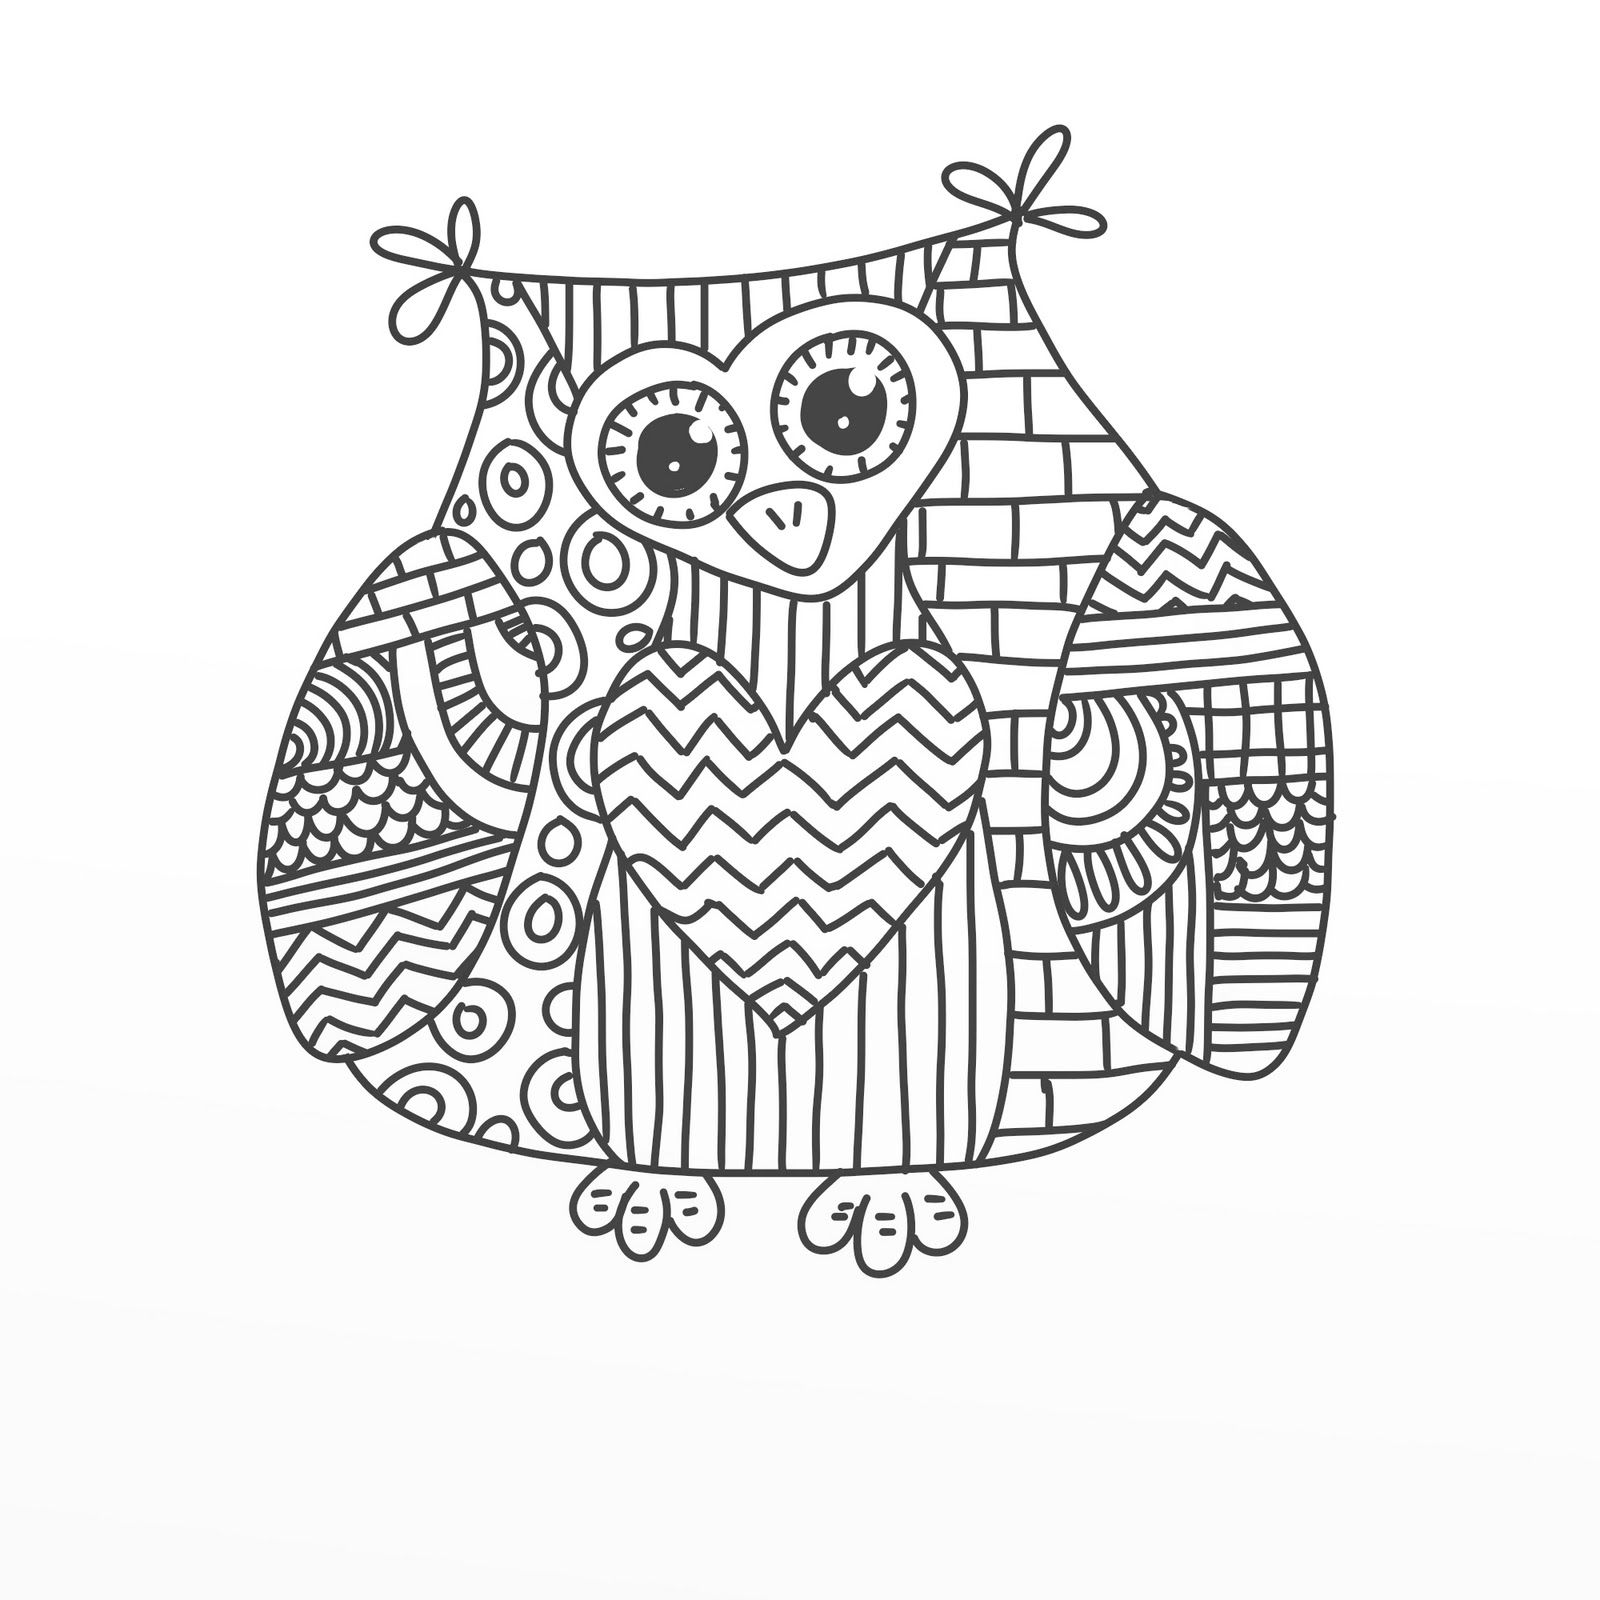 Owl coloring pages free - Owl Manga Colouring Challenge 6 Letraset Blog Creative Opportunities Free Adult Coloring Pagescoloring